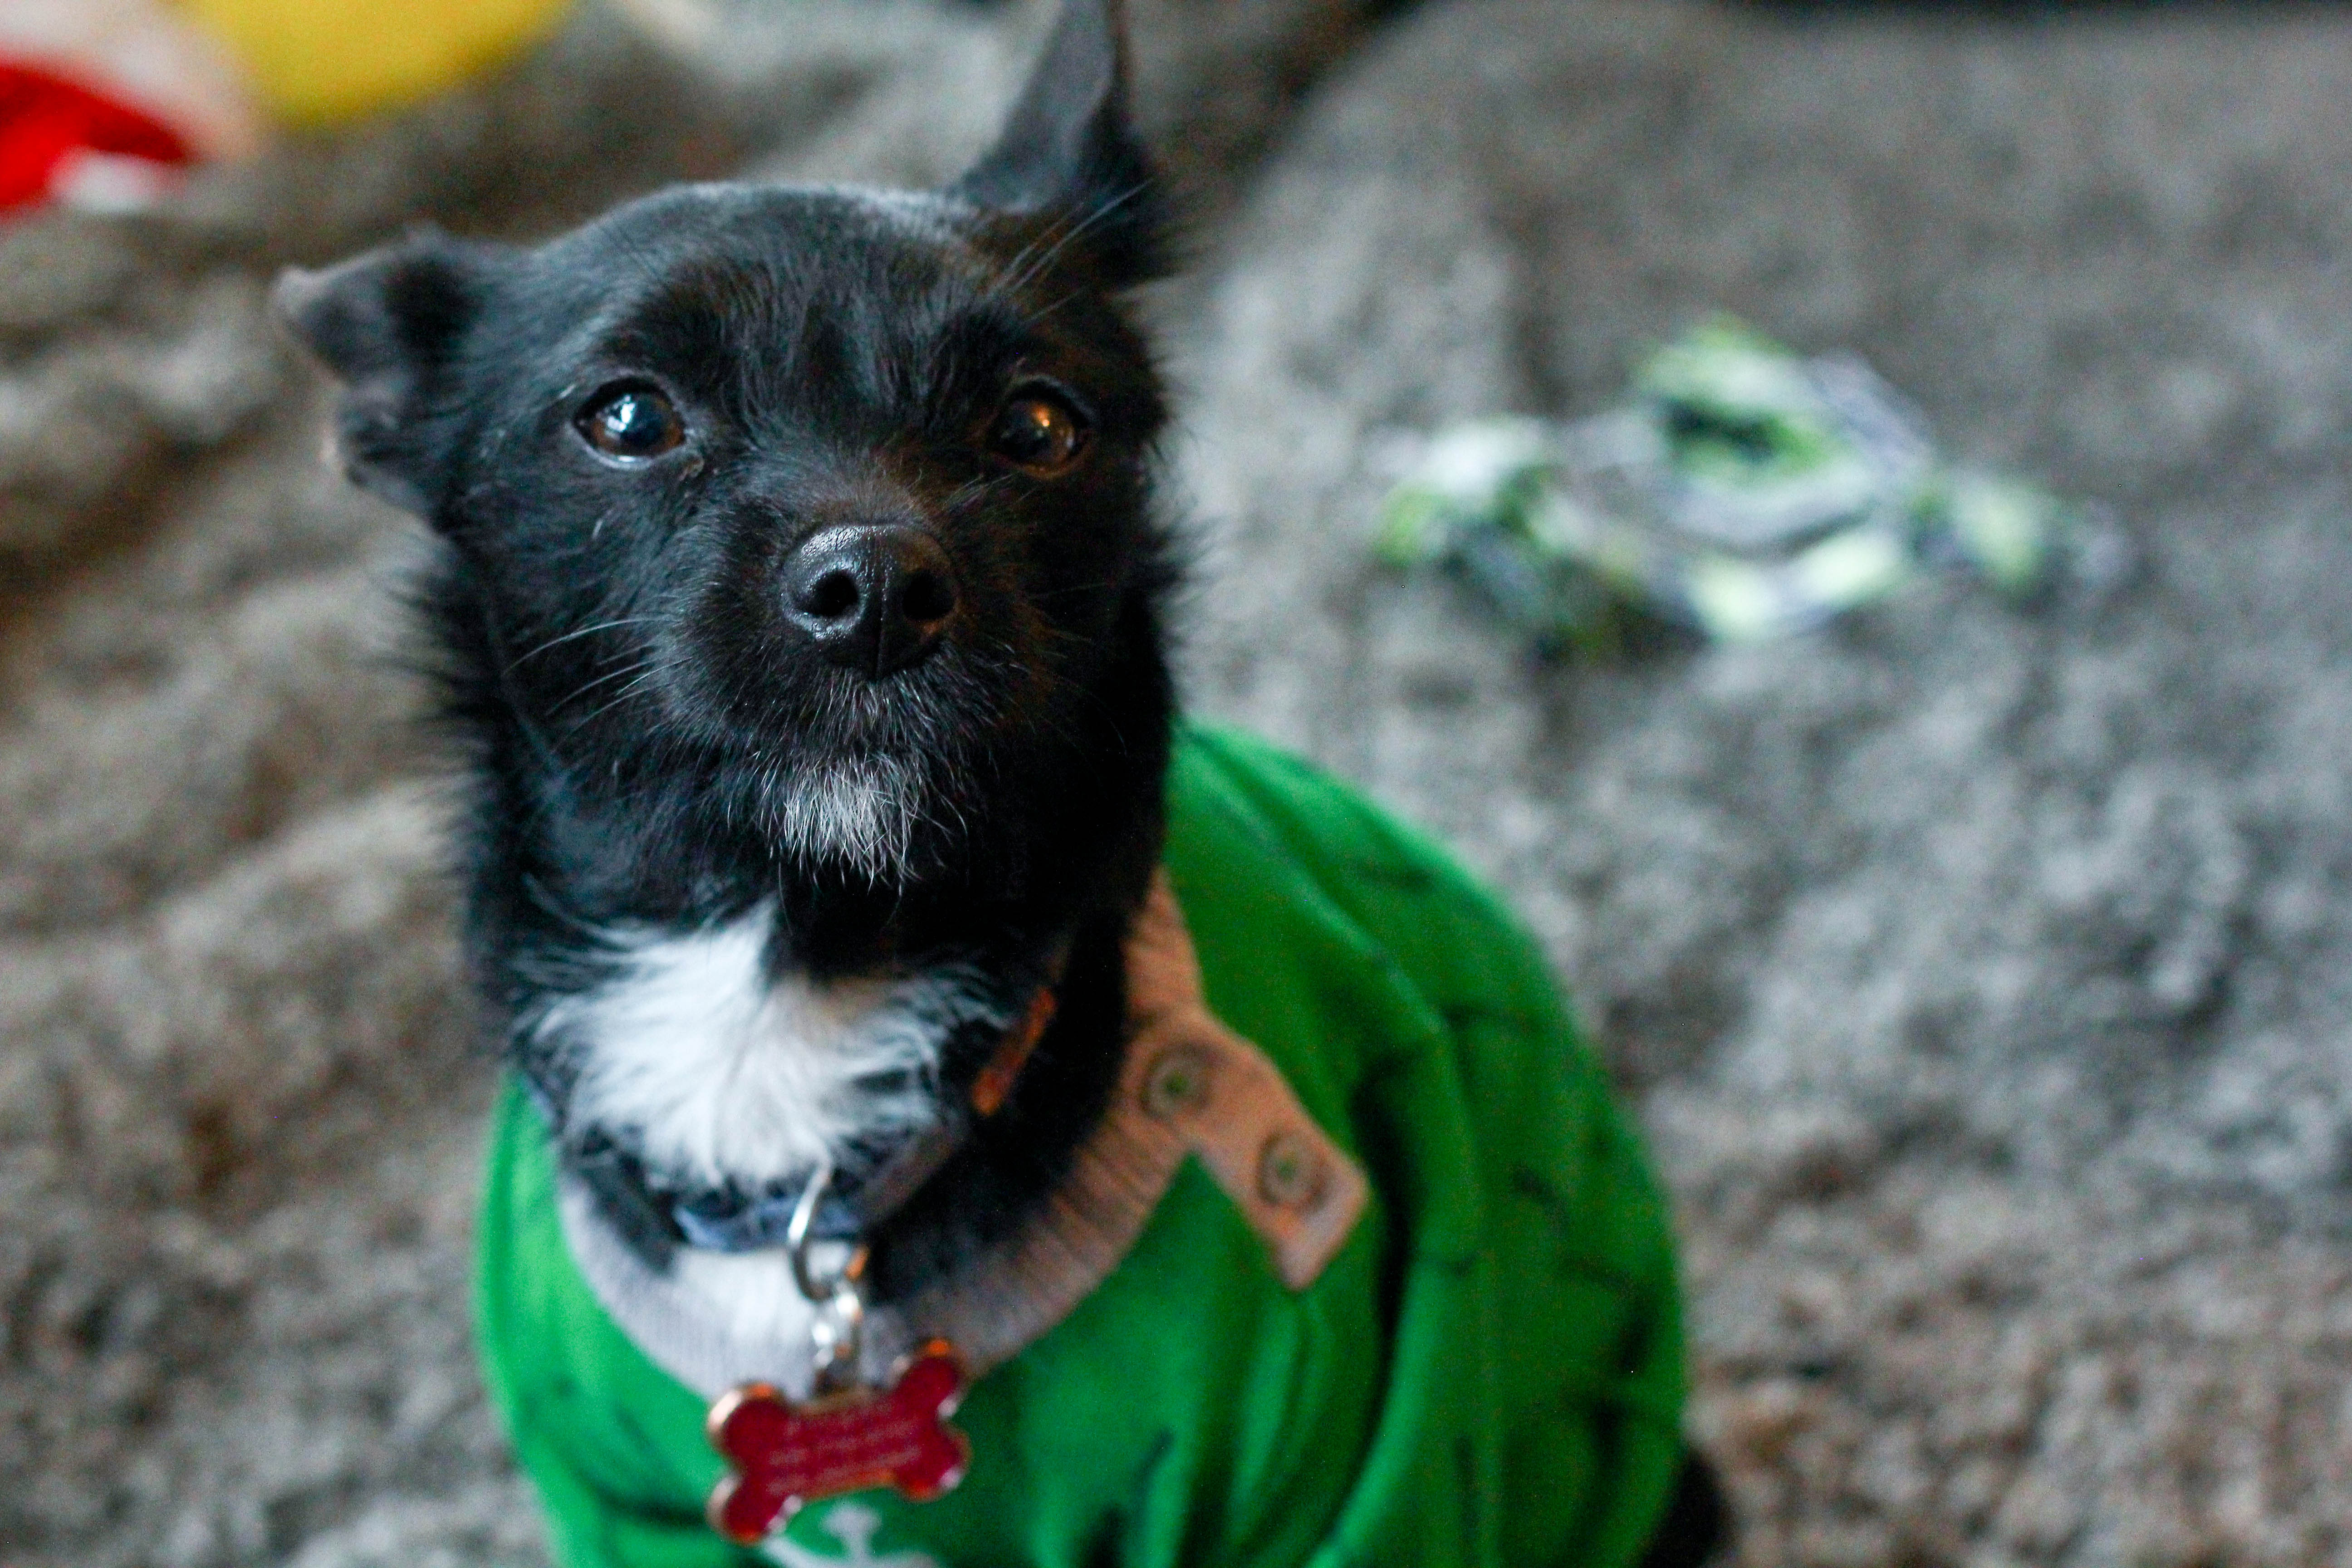 Last Minute DIY Dog Costume From A Baby esie – Pickle Rick